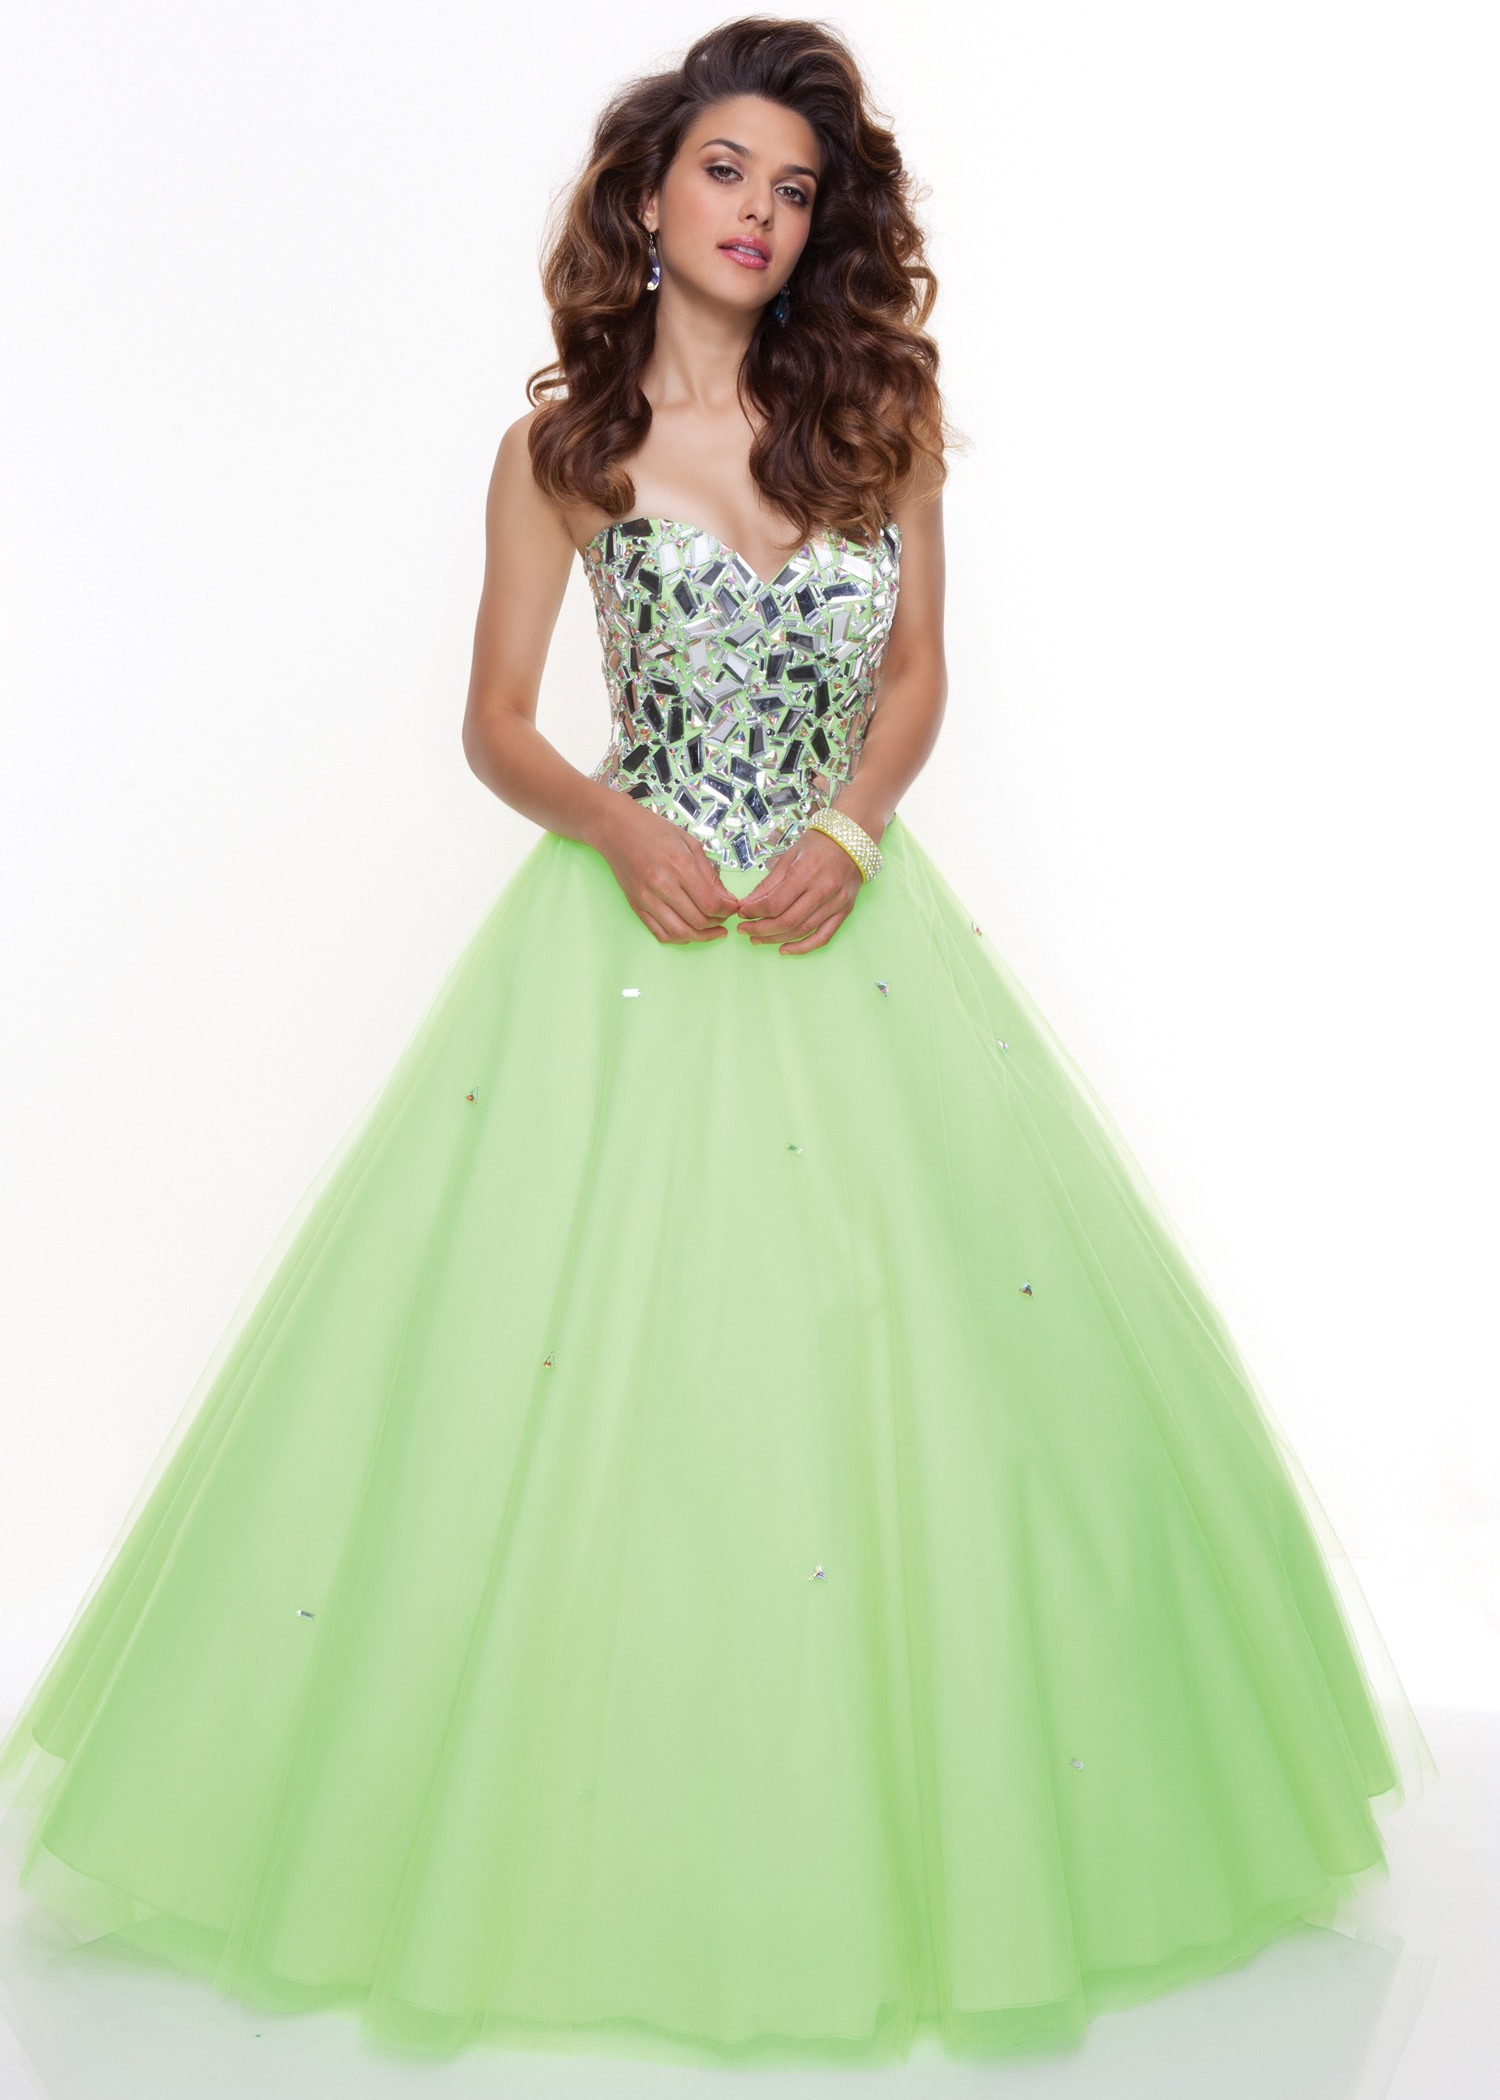 Paparazzi by Mori Lee 93091 - Strapless Green Ball Gown Dress, 2013 ...